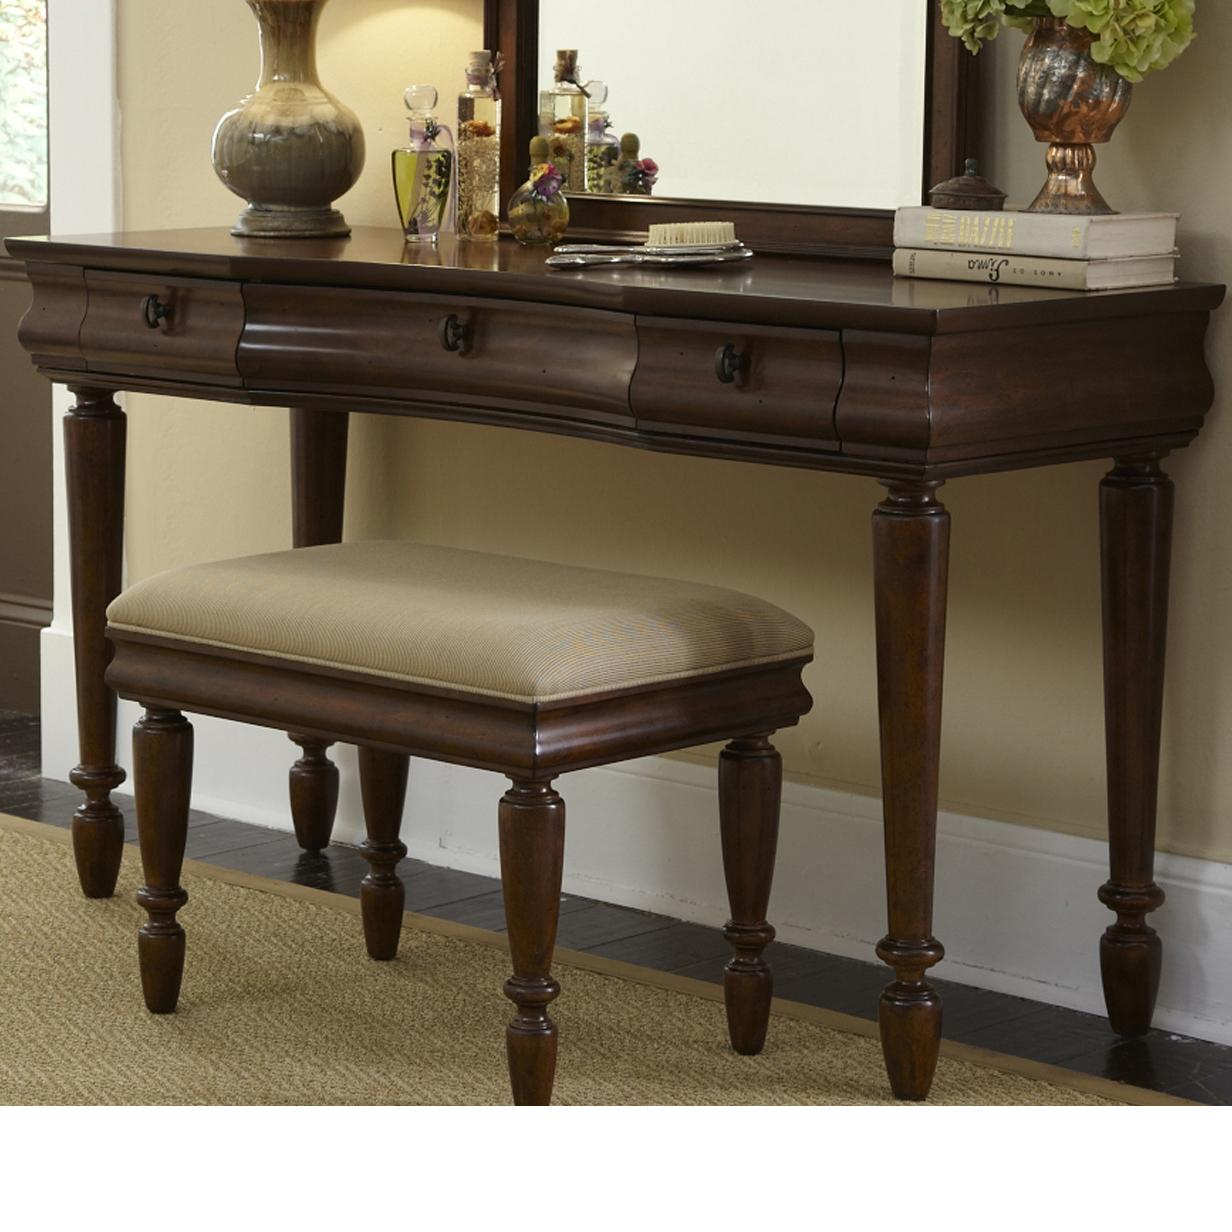 Liberty Furniture Rustic Traditions Vanity Base - Item Number: 589-BR35